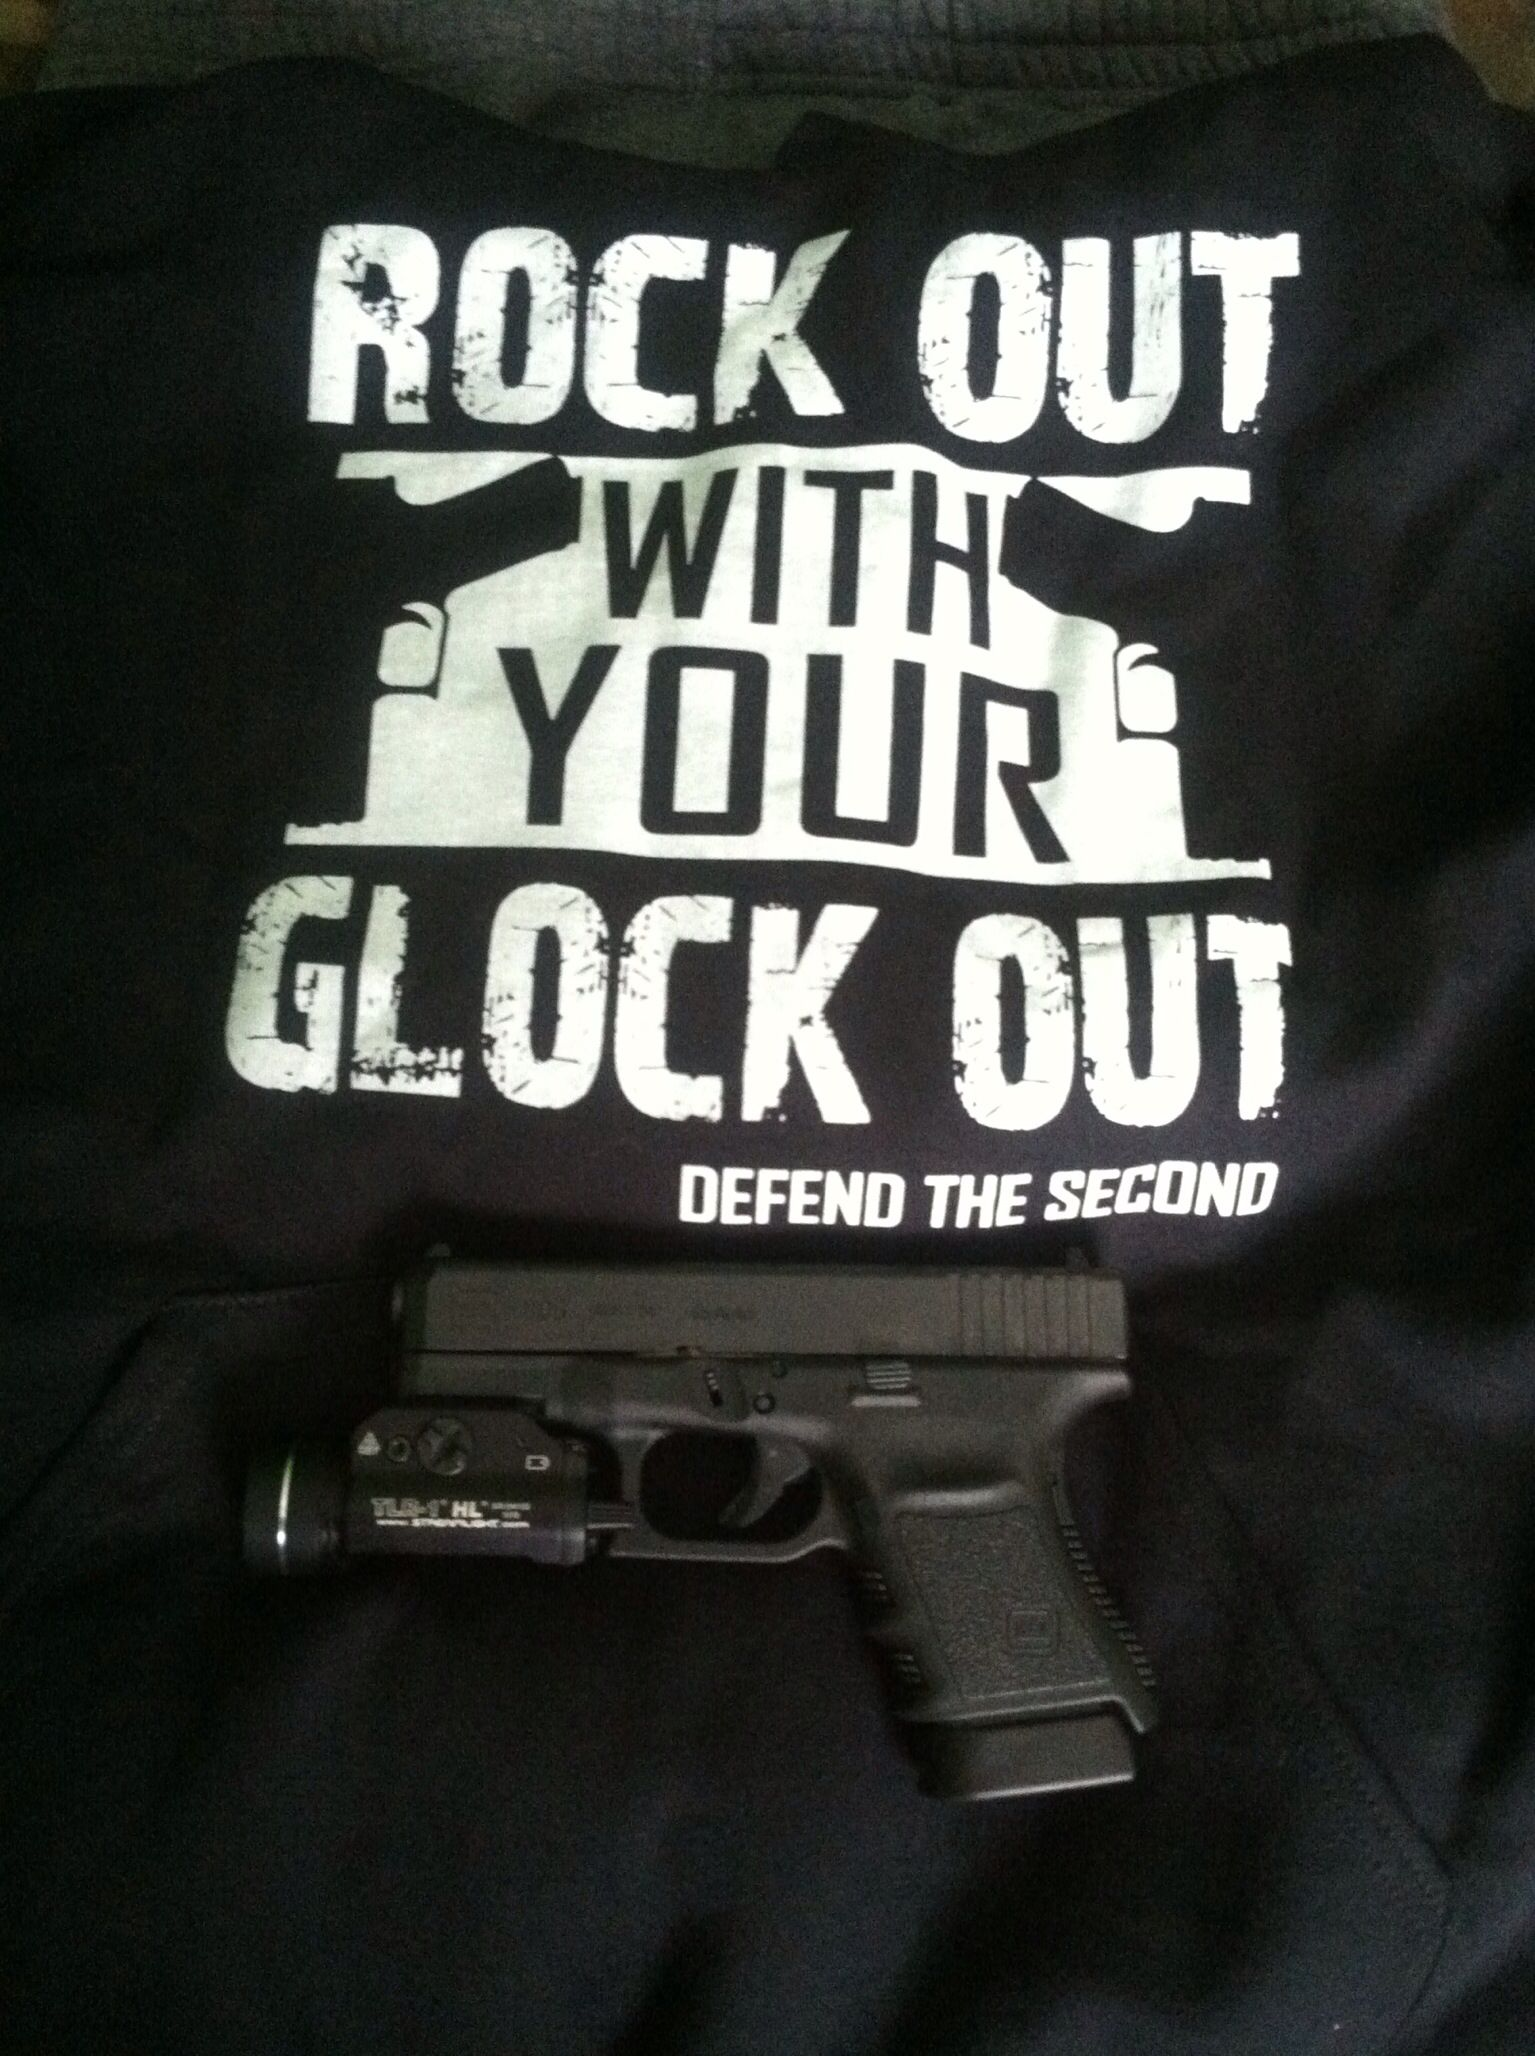 Free body piercing by glock  Rock out with your glock out  Guns  Pinterest  Guns